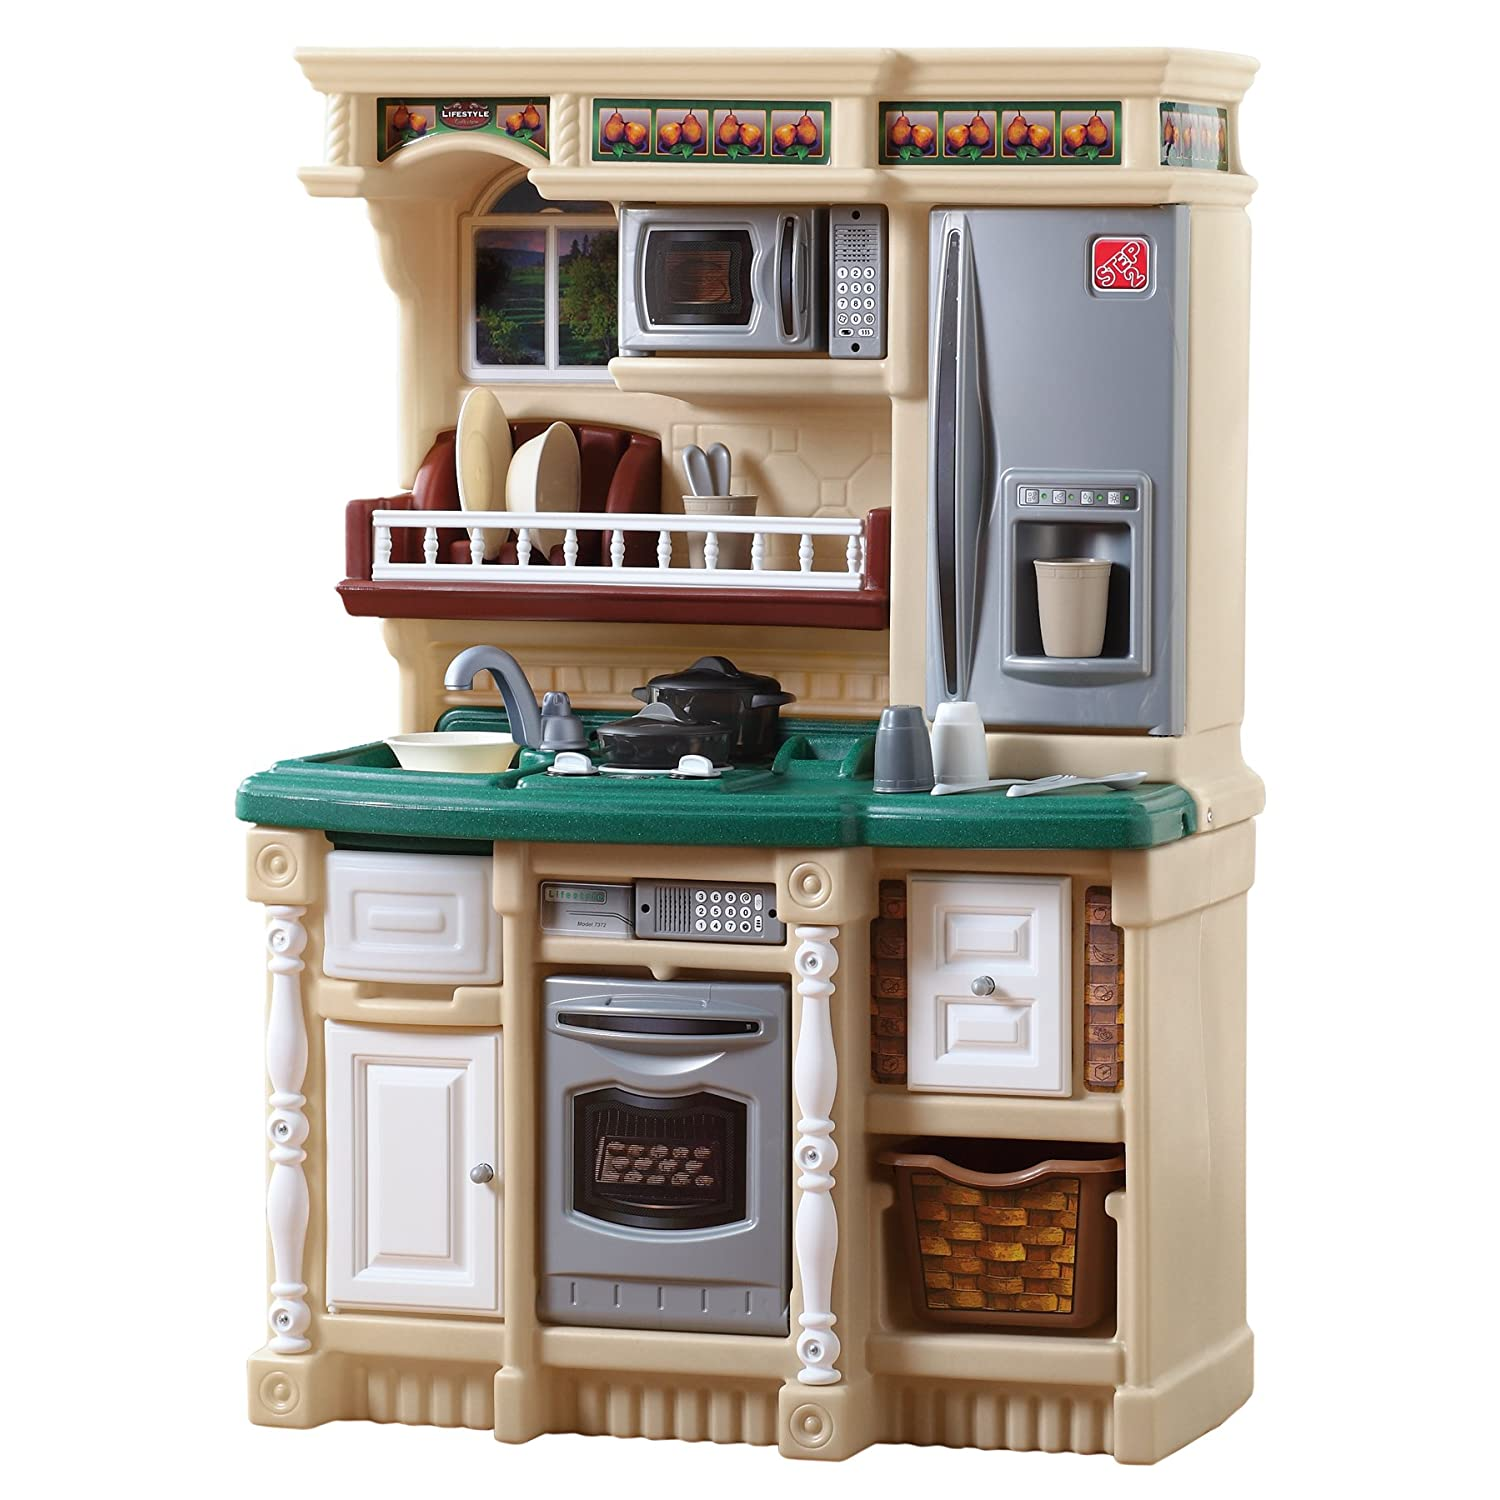 Pretend play kitchen set babygaga Realistic play kitchen